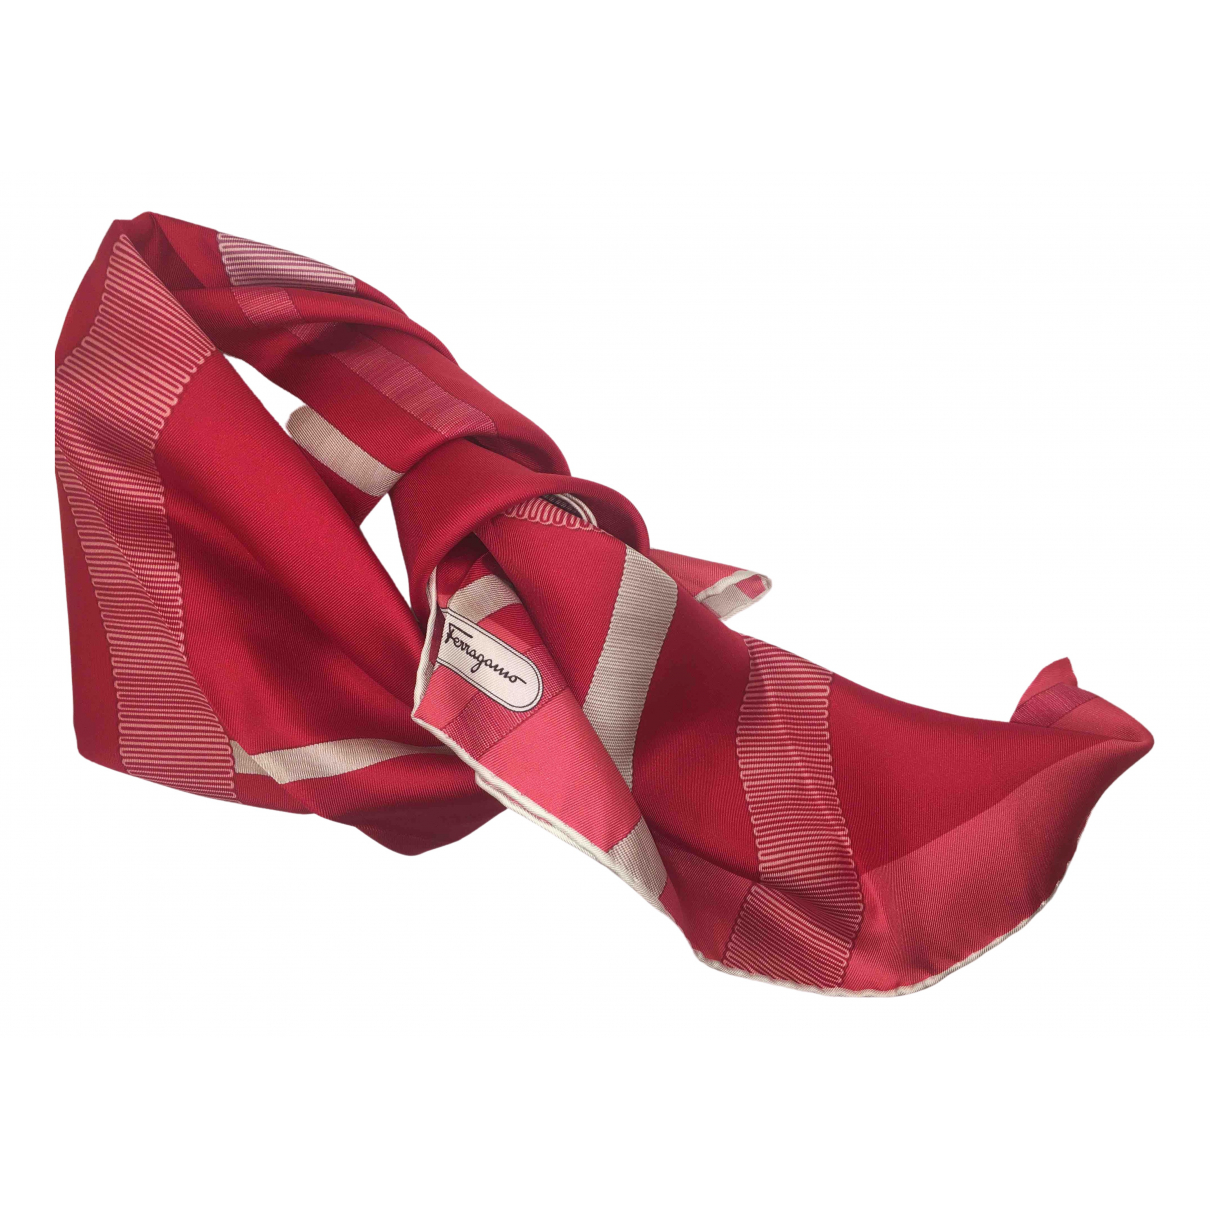 Salvatore Ferragamo \N Red Silk scarf for Women \N